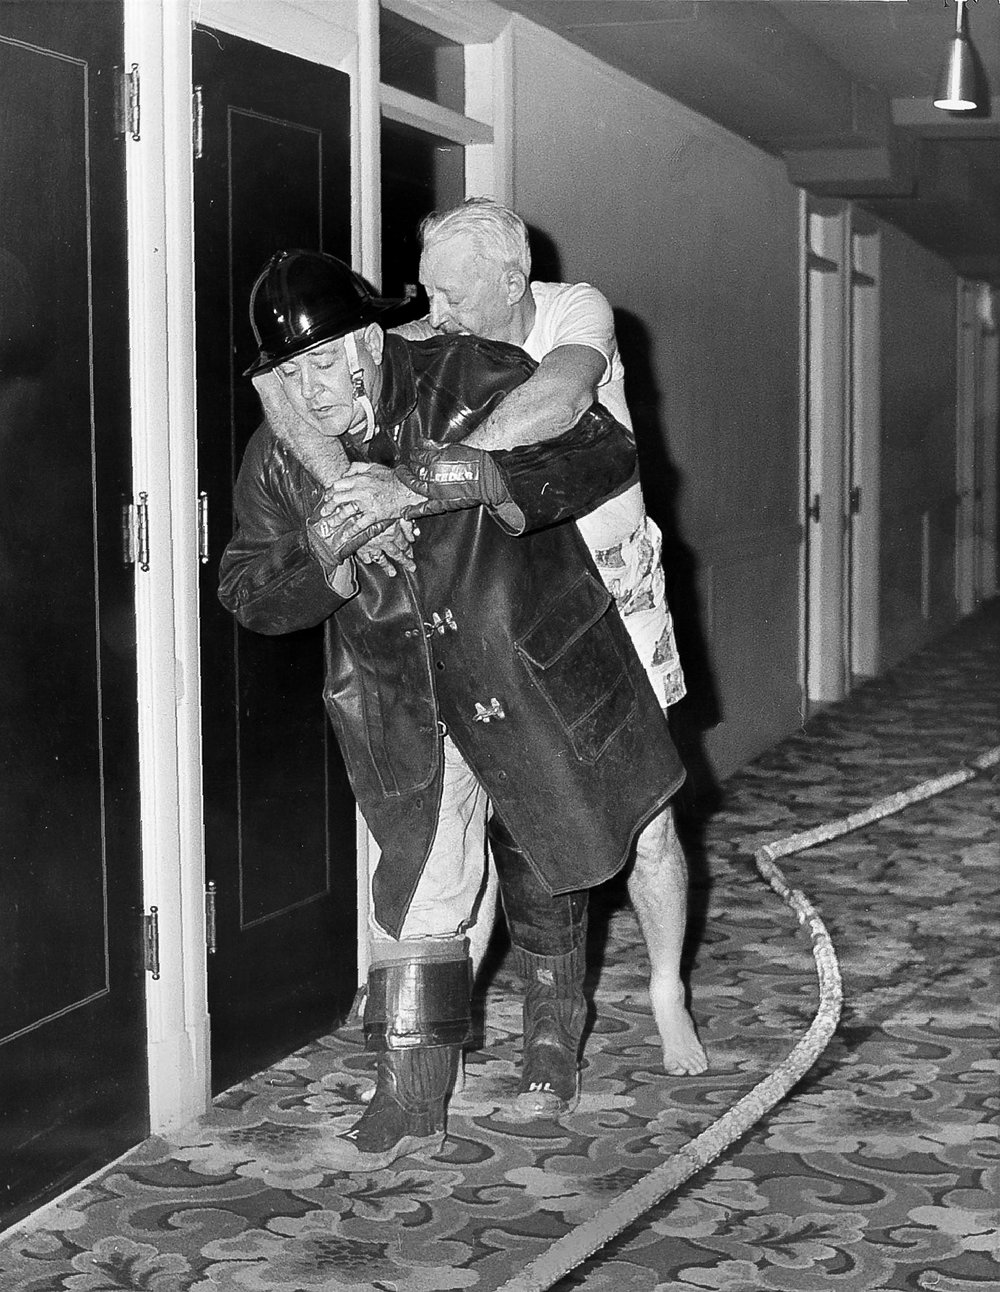 Springfield firefighter Henry Leeder carries William Winchester, suffering from smoke inhalation, from his room on the 11th floor of the Hotel St. Nicholas during a fire Nov, 6, 1961. [Bill Hagen/The State Journal-Register]